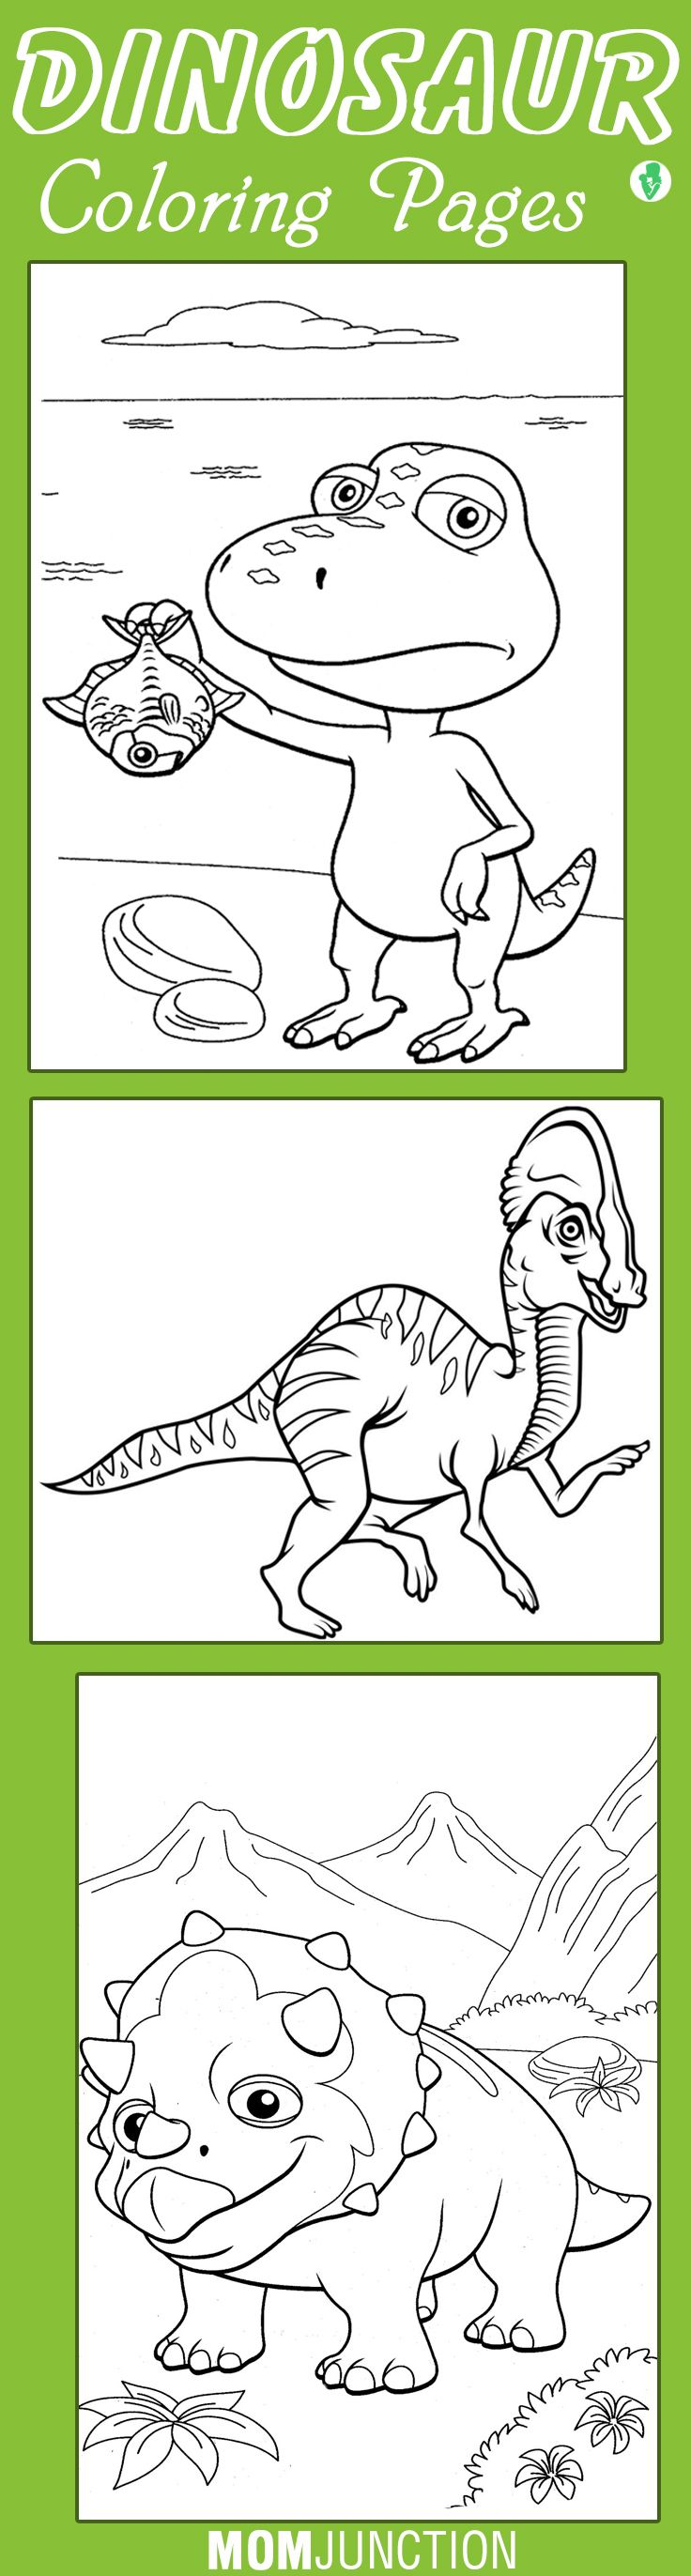 Top 10 Free Printable Dinosaur Train Coloring Pages Online